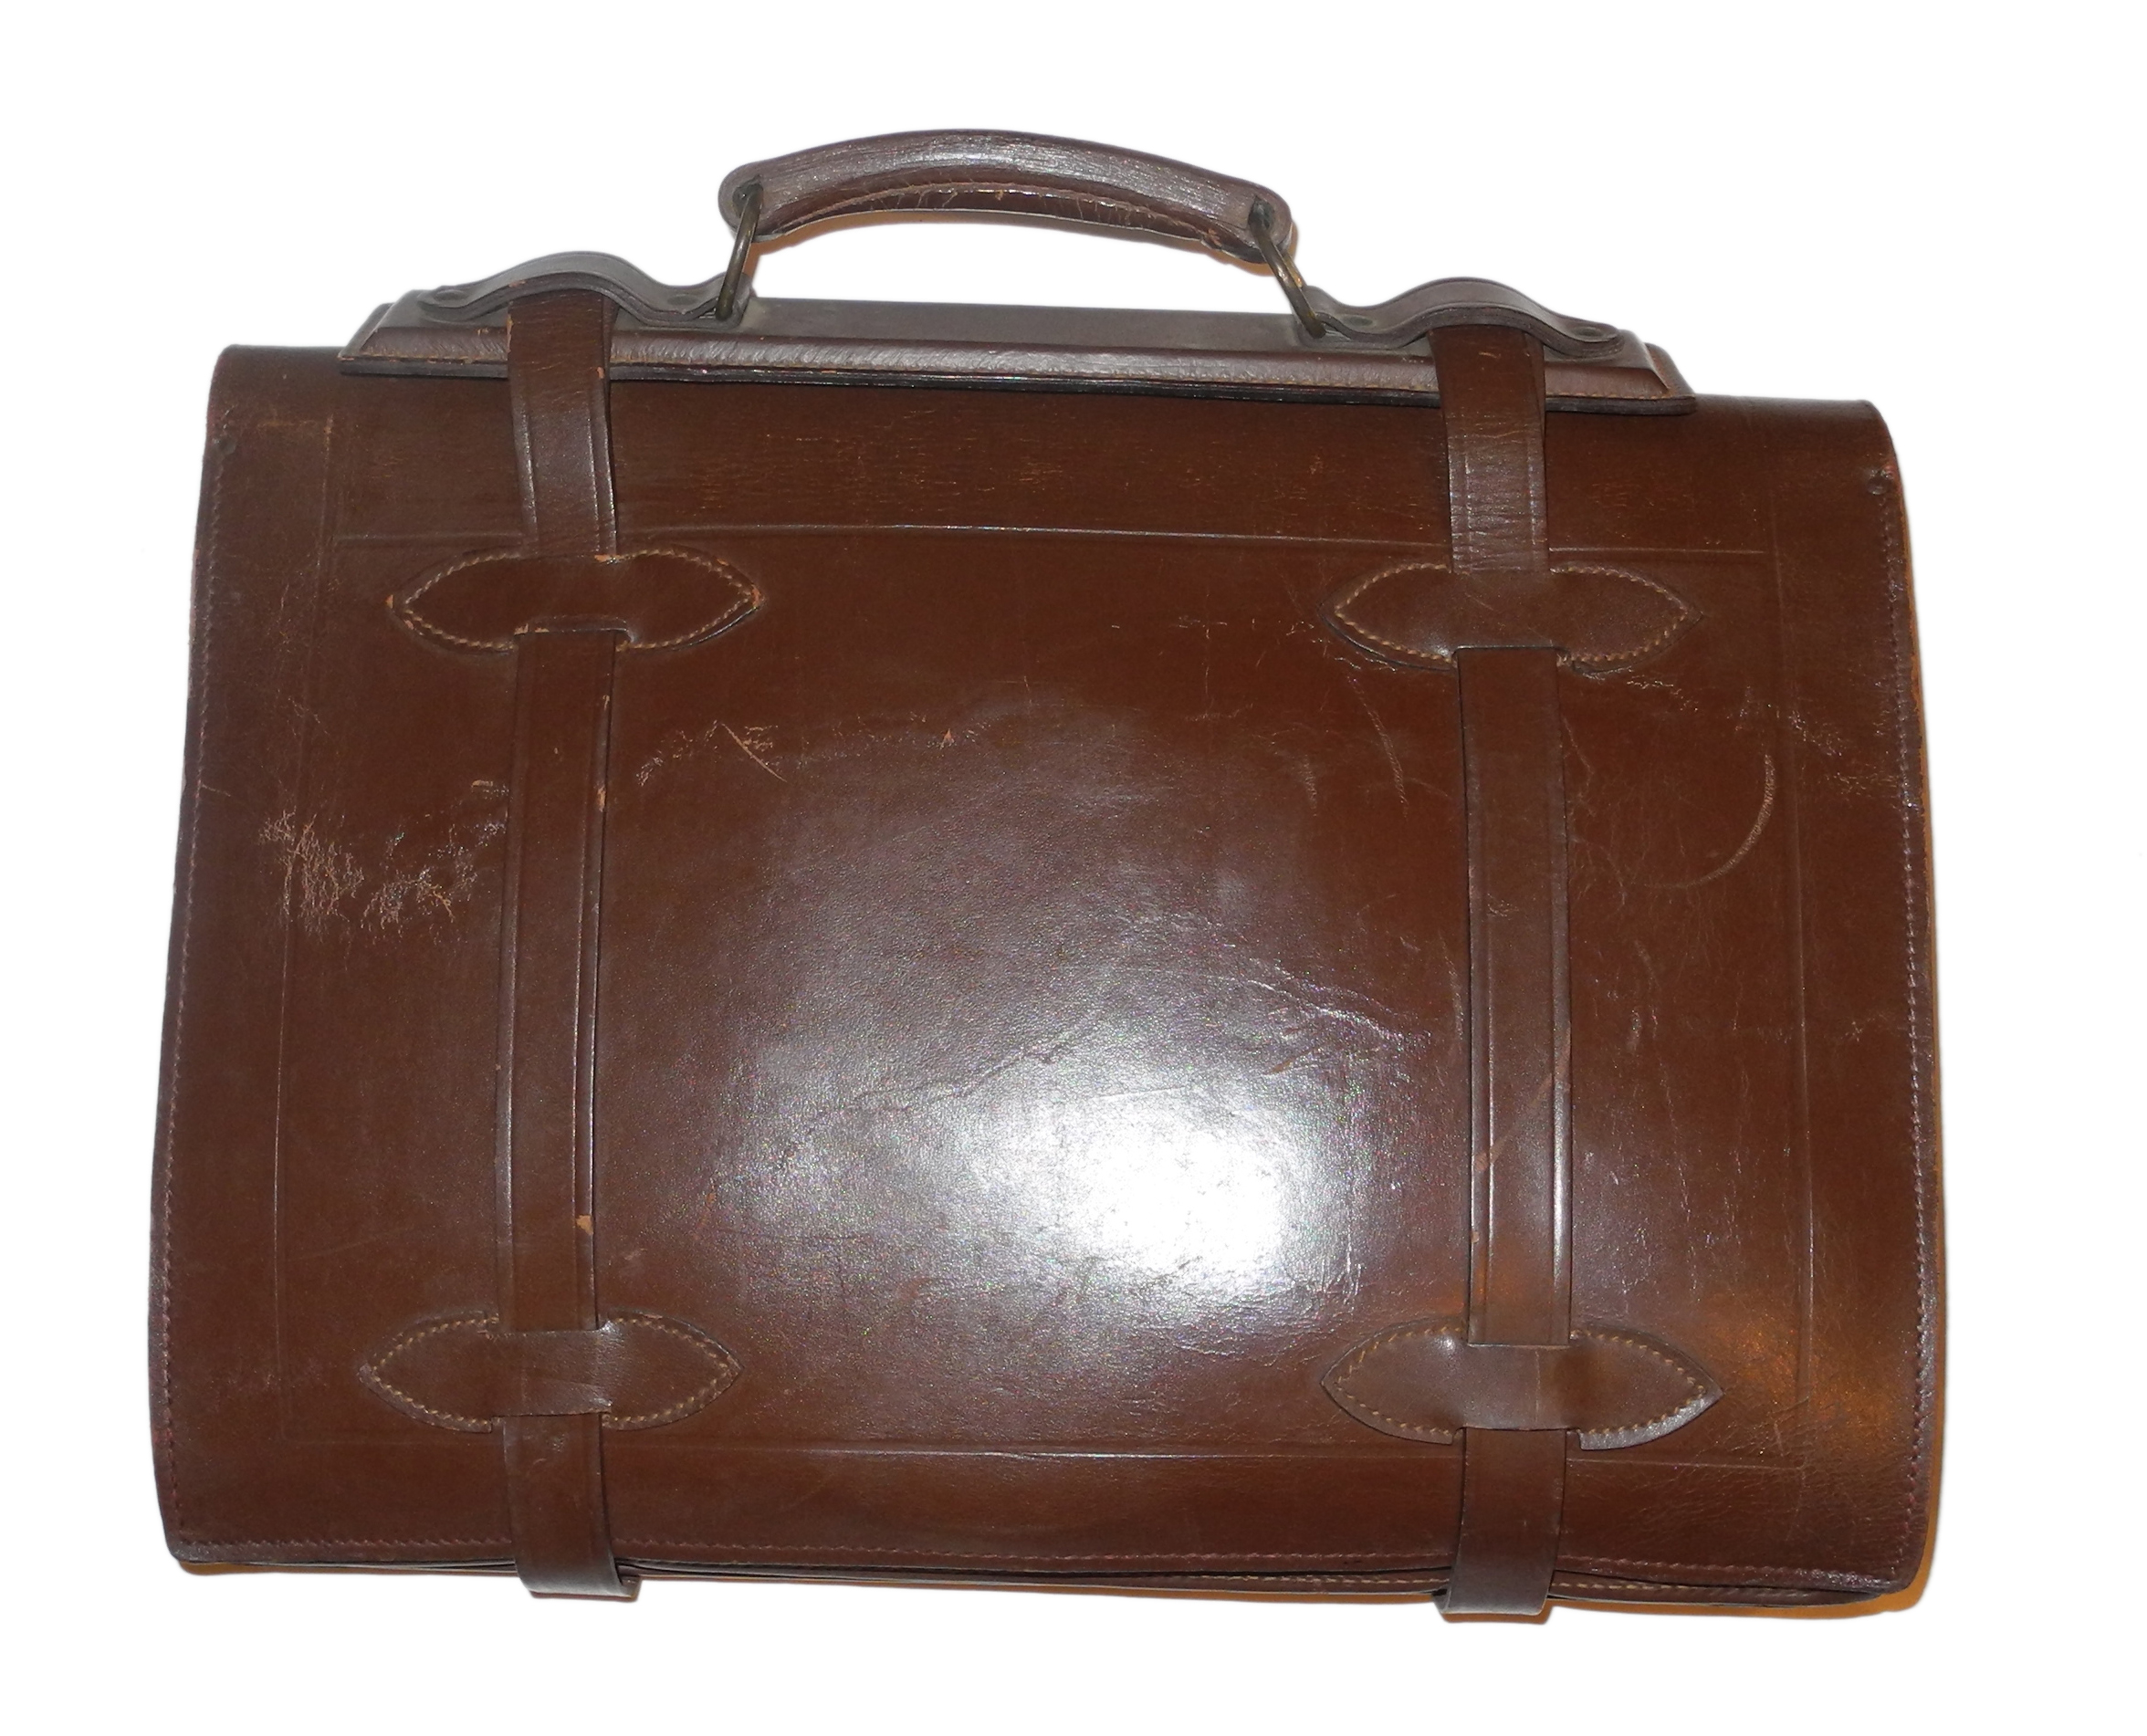 US Navy pilot's navigation kit case